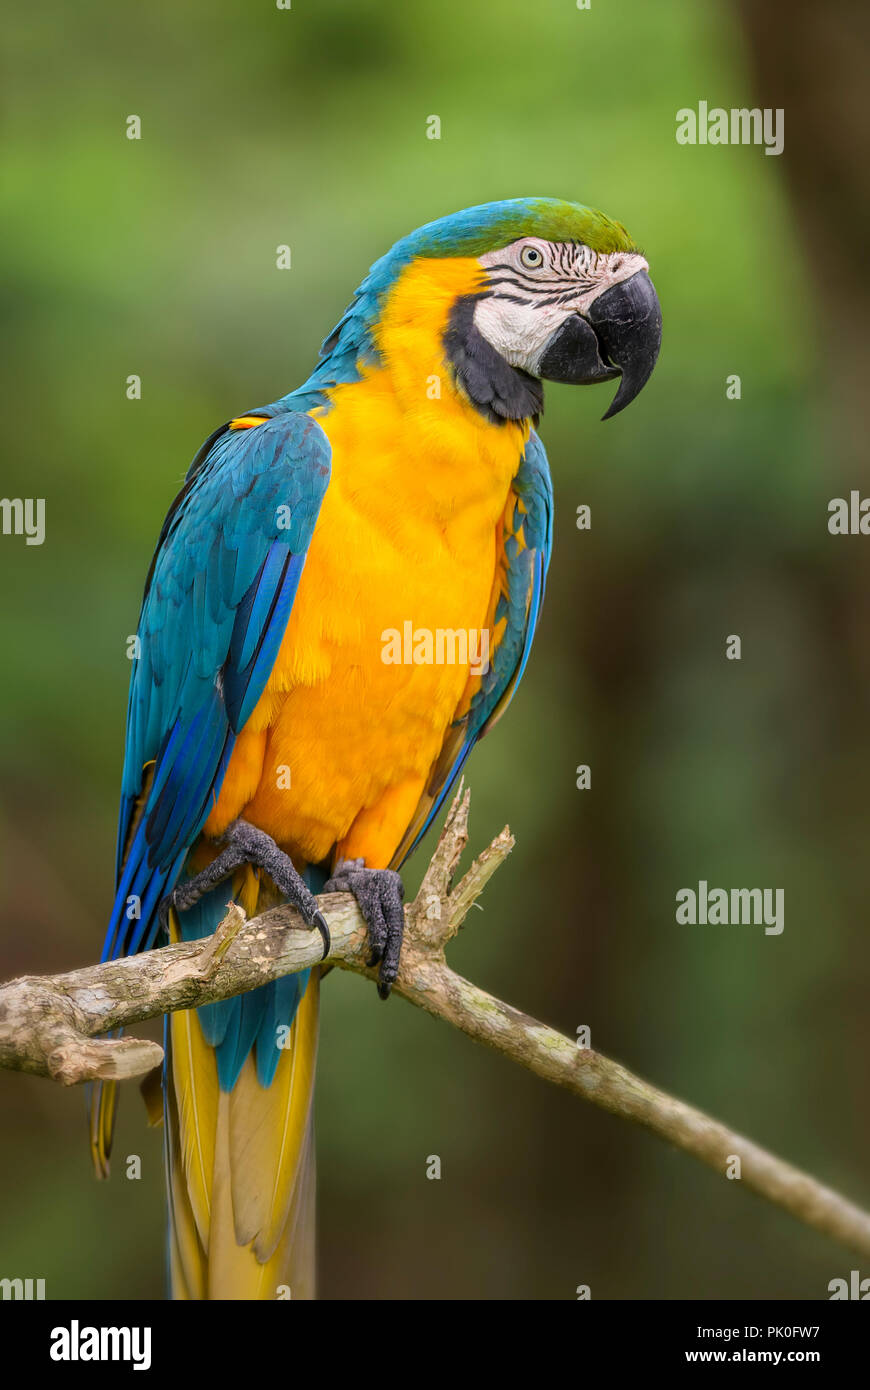 Blue-and-yellow Macaw - Ara ararauna, large beautiful colored parrot from South America forests and woodlands. - Stock Image